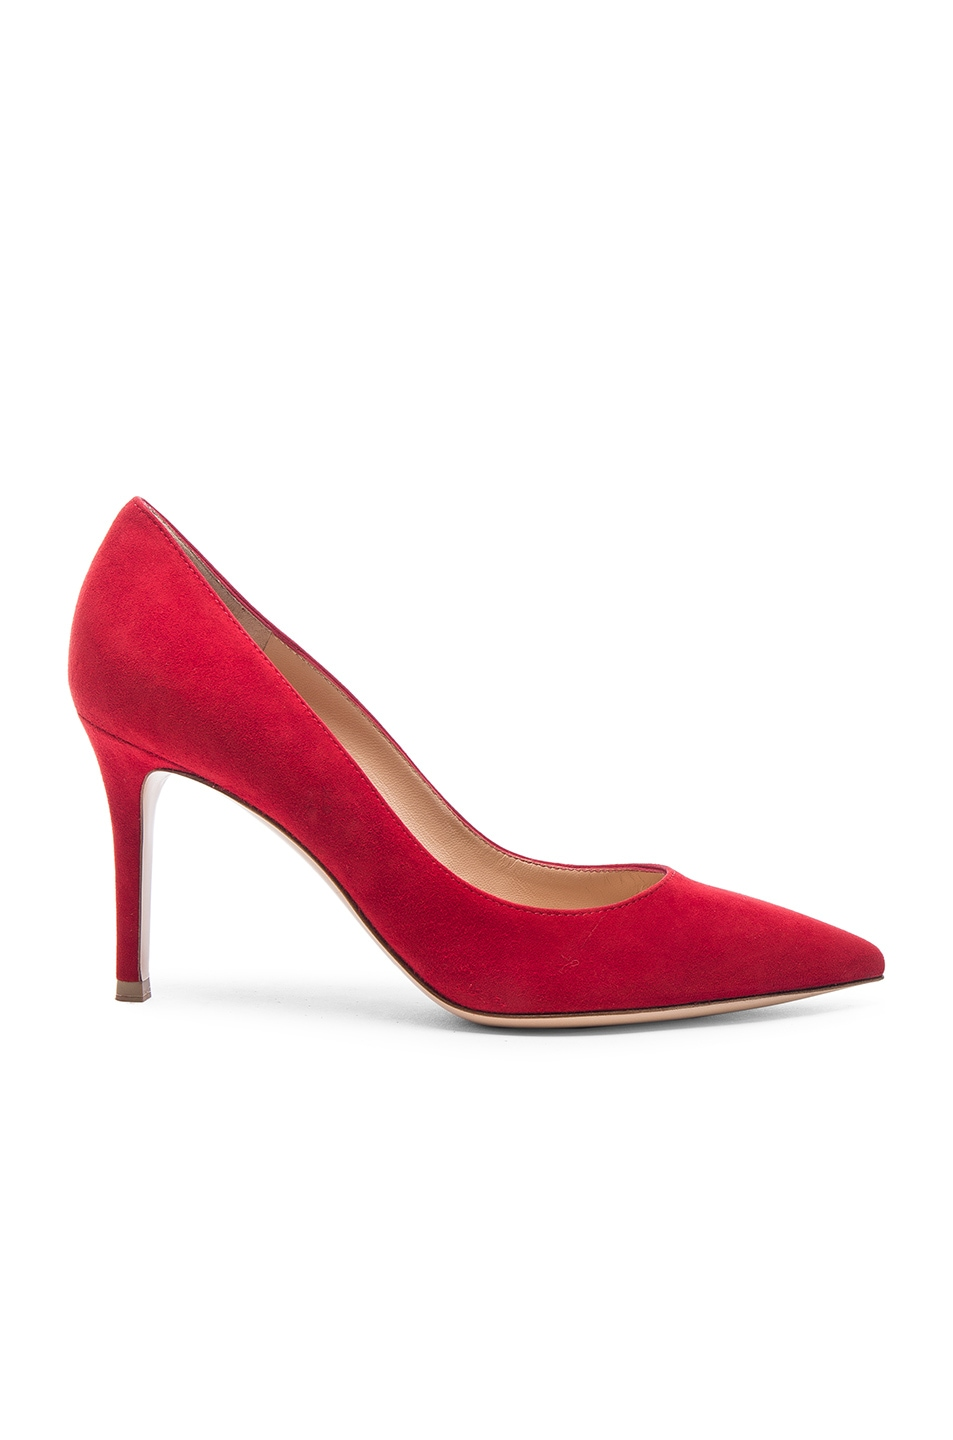 Image 1 of Gianvito Rossi Suede Gianvito 85 Pumps in Tabasco Red